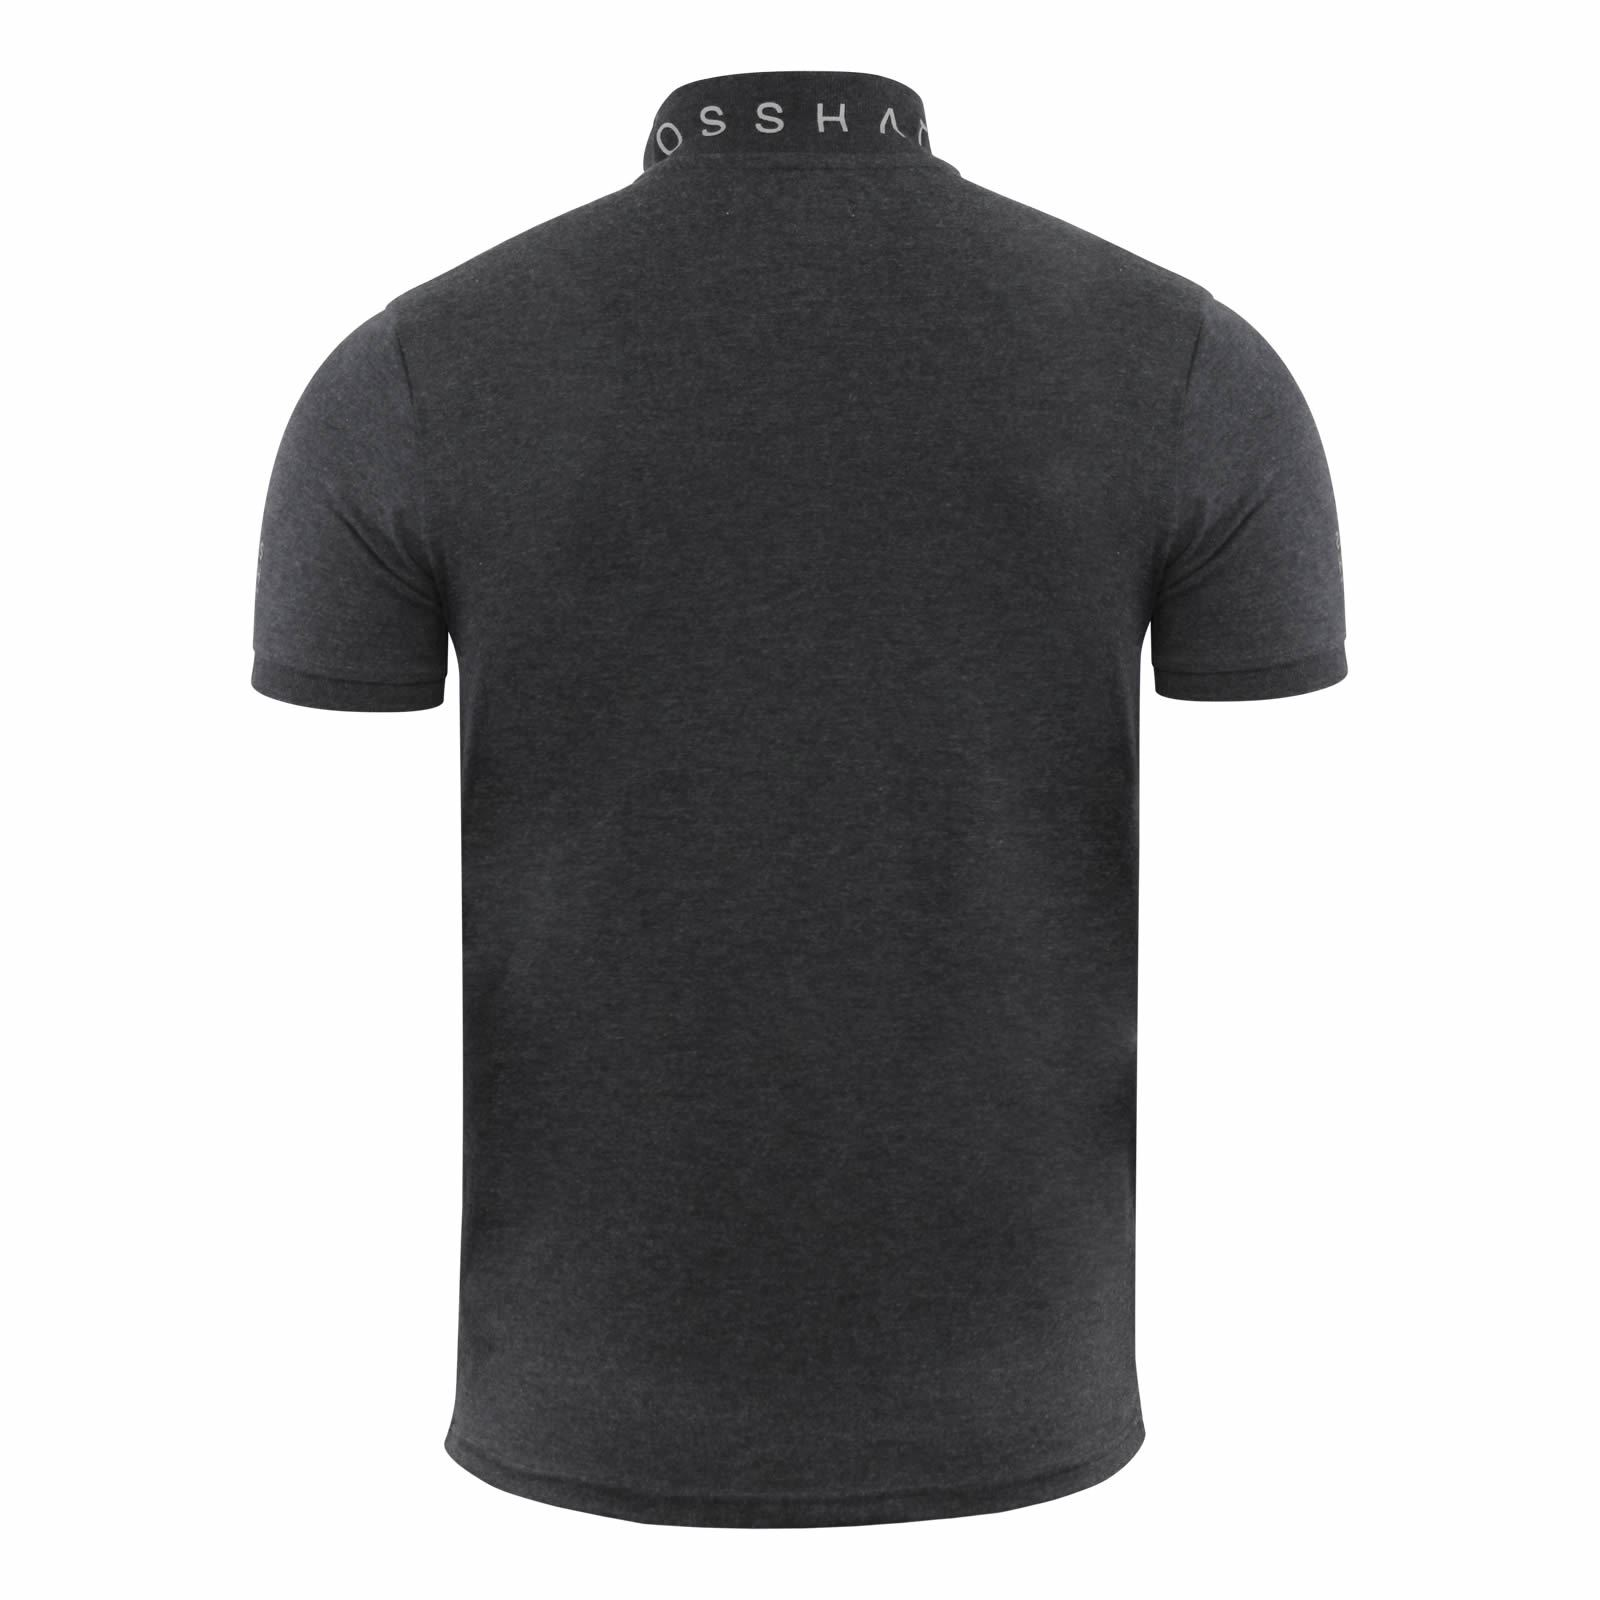 Crosshatch-Mens-Polo-T-Shirt-Pique-Polo-Cotton-Collared-Short-Sleeve-T-Shirt thumbnail 54